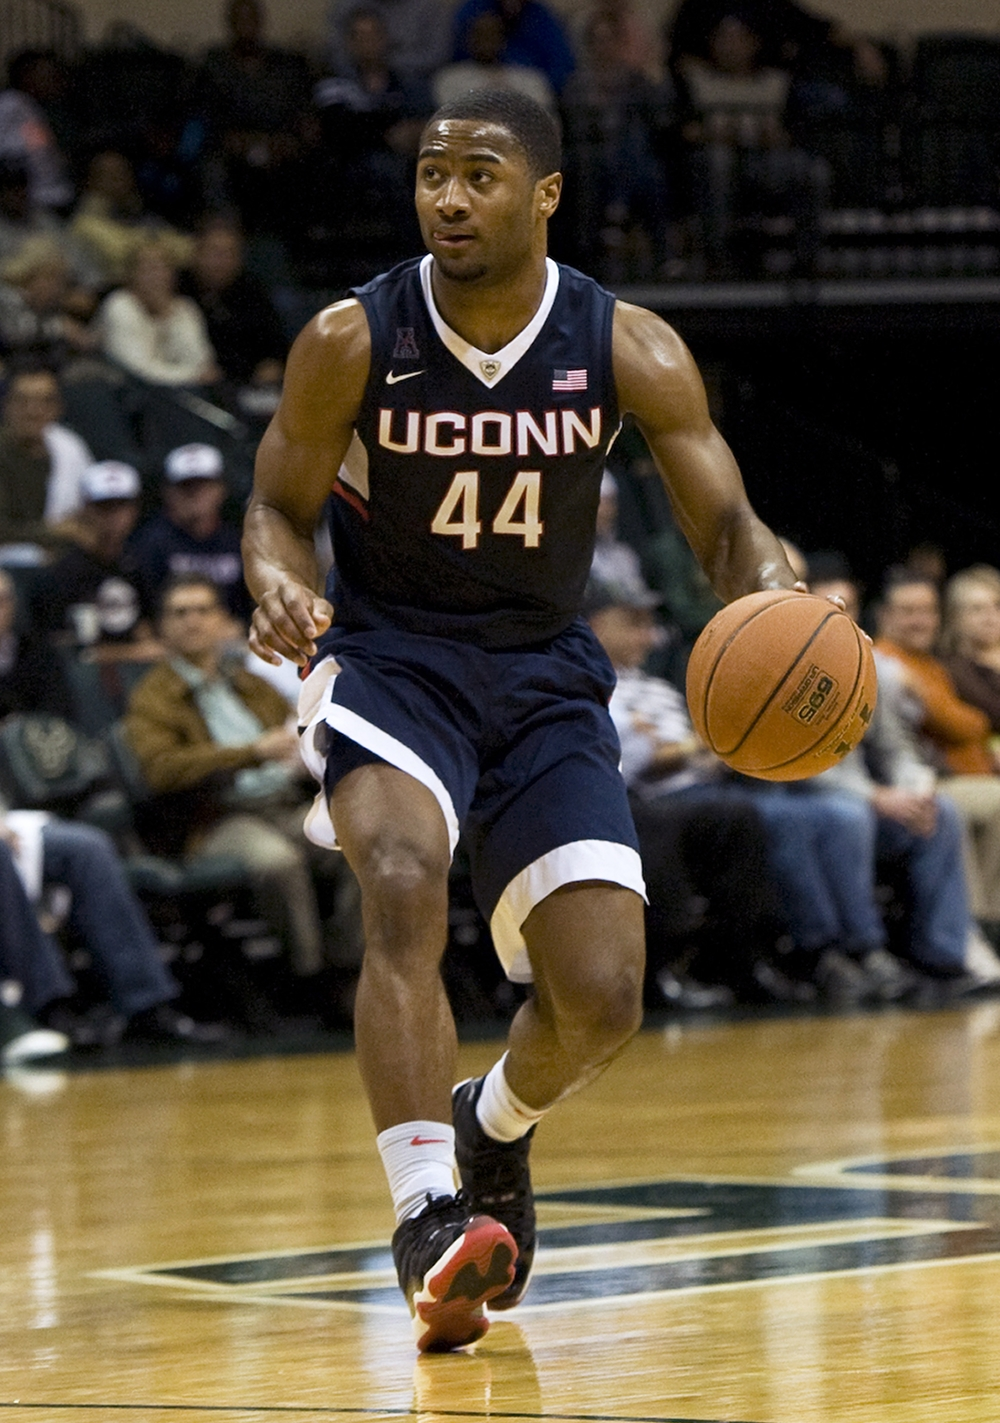 Connecticut's Rodney Purvis moves the ball downcourt against South Florida during the second half of an NCAA college basketball game Thursday, Feb. 25, 2016 in Tampa, Fla. Purvis scored 18 points to lead Connecticut in a 81-51 win over South Florida. (AP Photo/Steve Nesius)